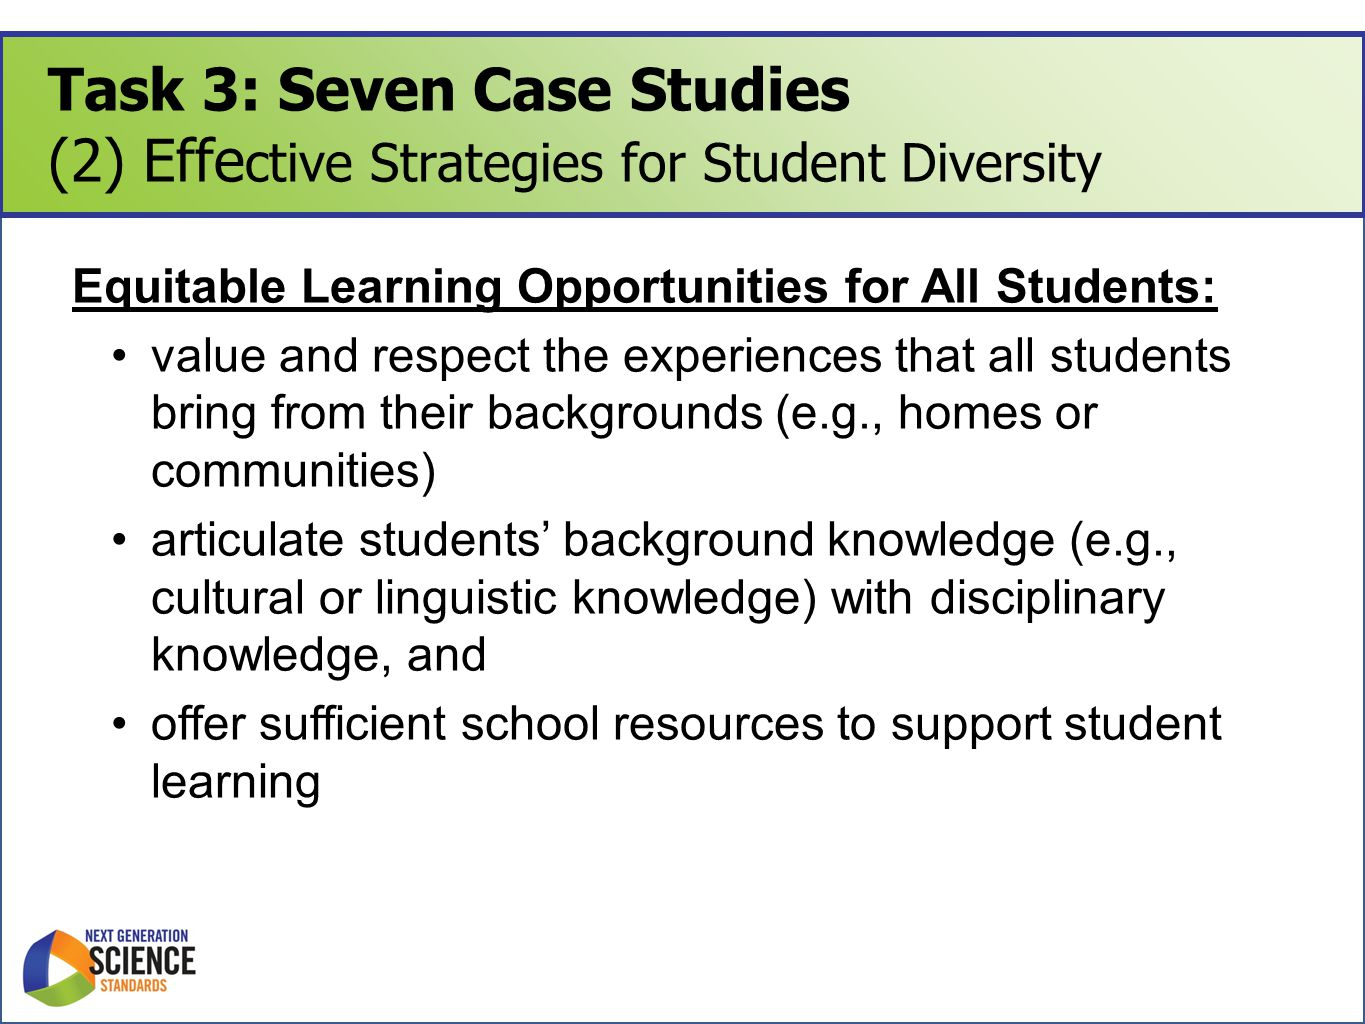 Task 3: Seven Case Studies (2) Effe ctive Strategies for Student Diversity Equitable Learning Opportunities for All Students: value and respect the experiences that all students bring from their backgrounds (e.g., homes or communities) articulate students' background knowledge (e.g., cultural or linguistic knowledge) with disciplinary knowledge, and offer sufficient school resources to support student learning